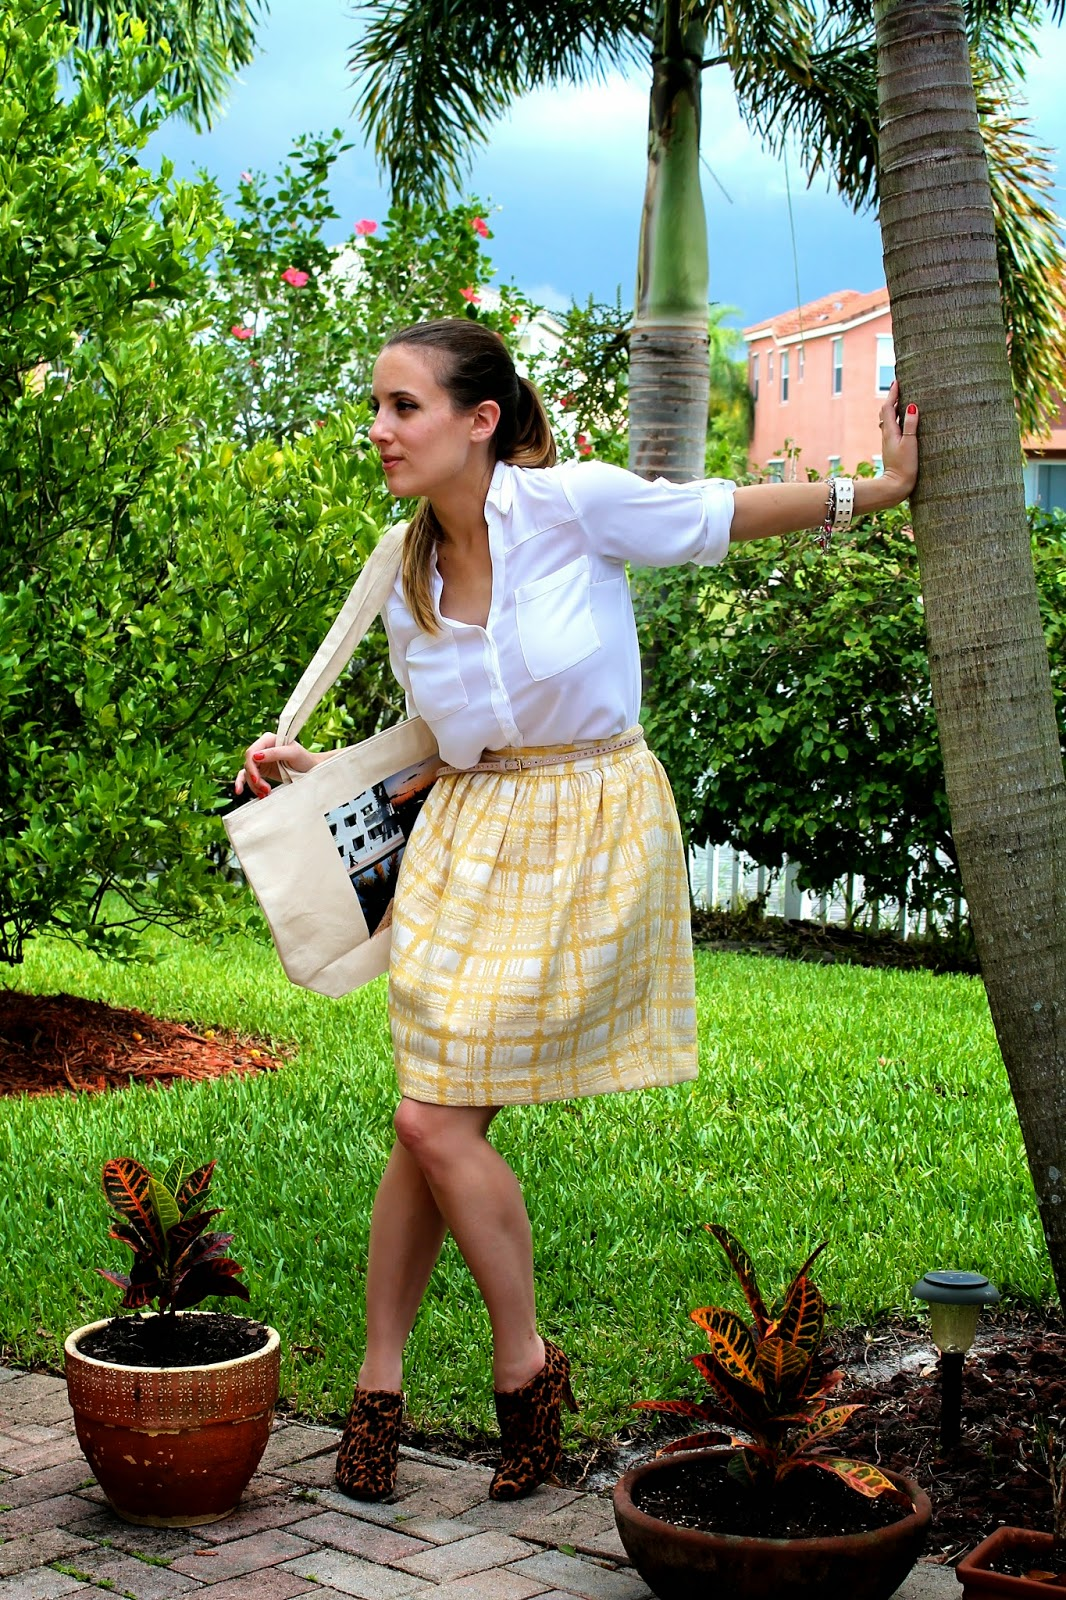 Gap, ASOS, Express, Nordstrom, Vince Camuto, J.Crew, prep, blogger style, patterns, what i wore, fashion blog, Miami fashion blogger, Miami blogger, street style